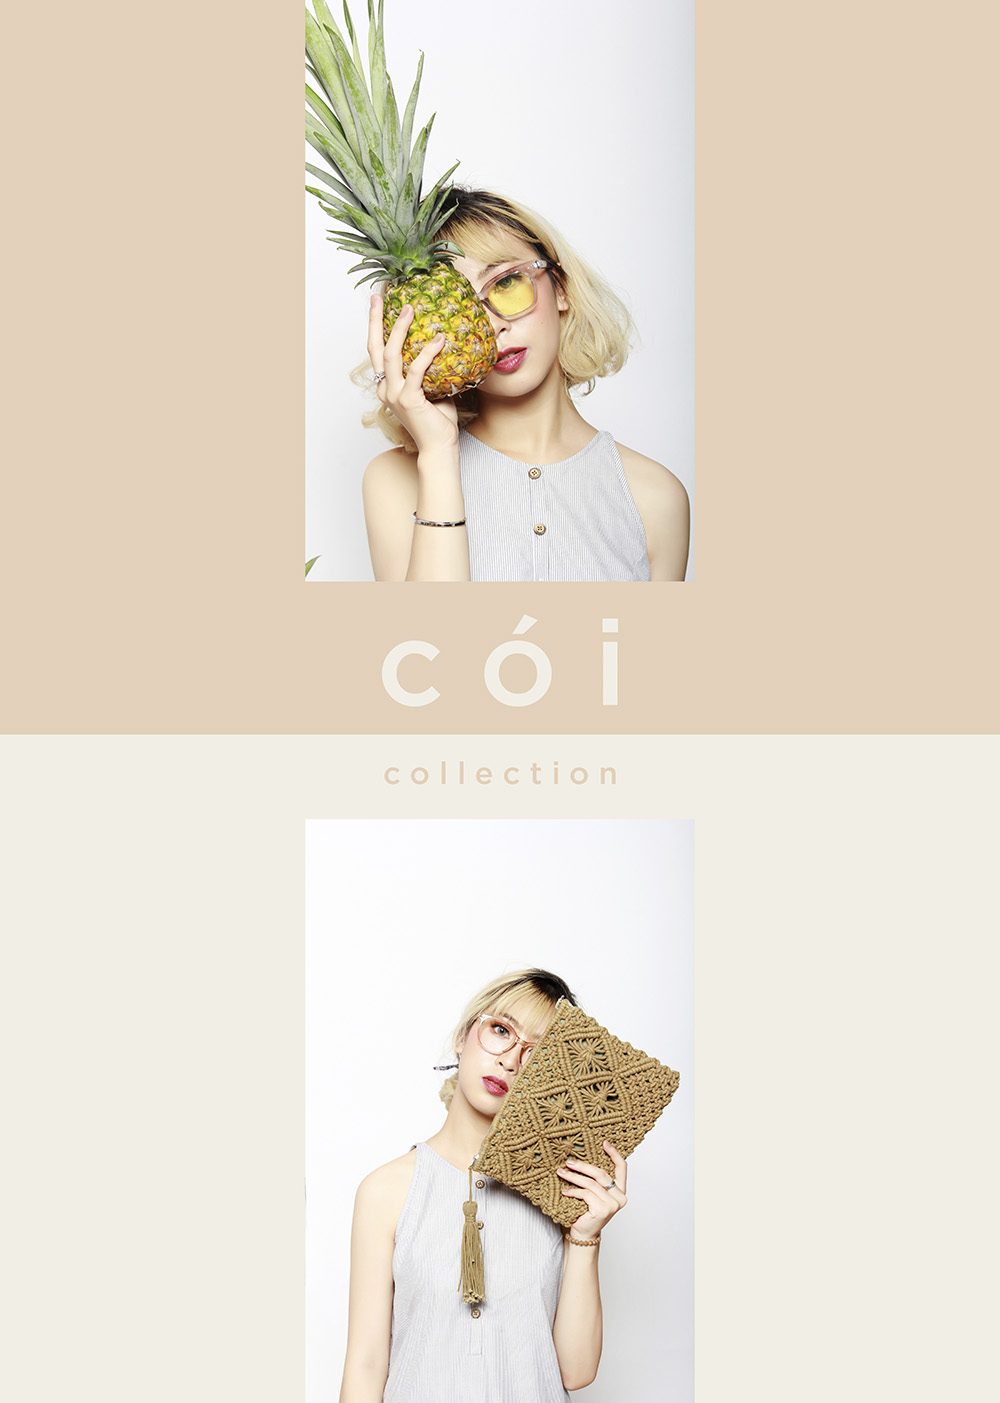 coi collection